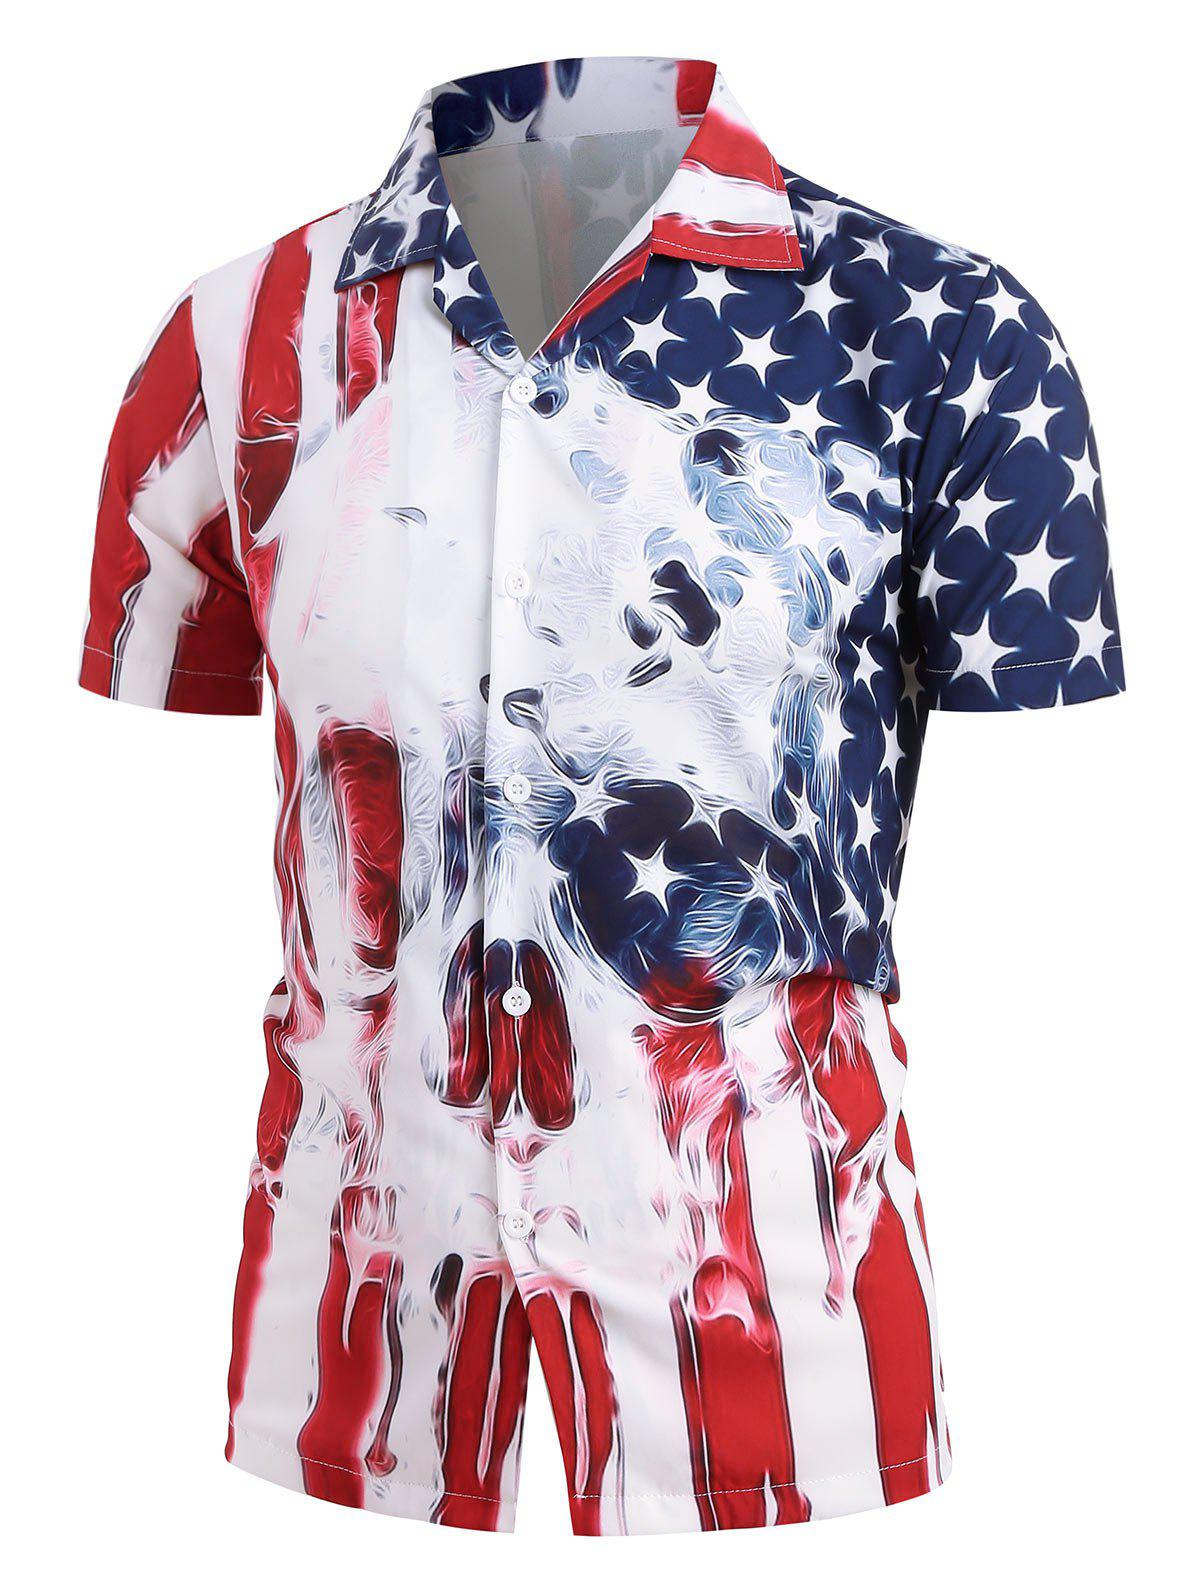 Unique American Flag Skull Print Short Sleeve Shirt